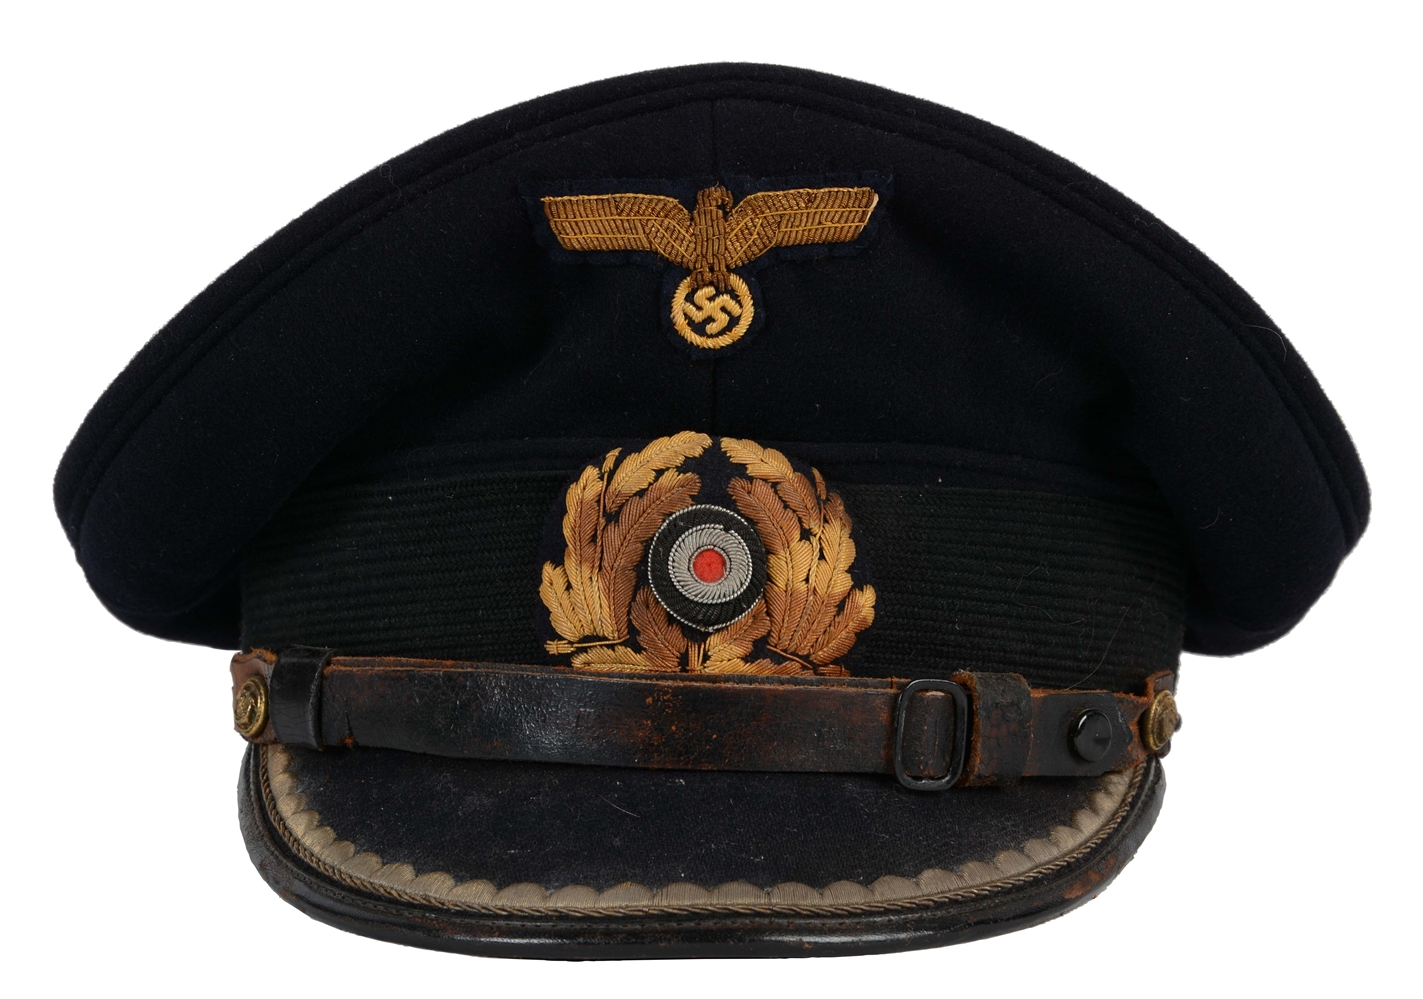 German WWII Kriegsmarine Officers Visor Cap.